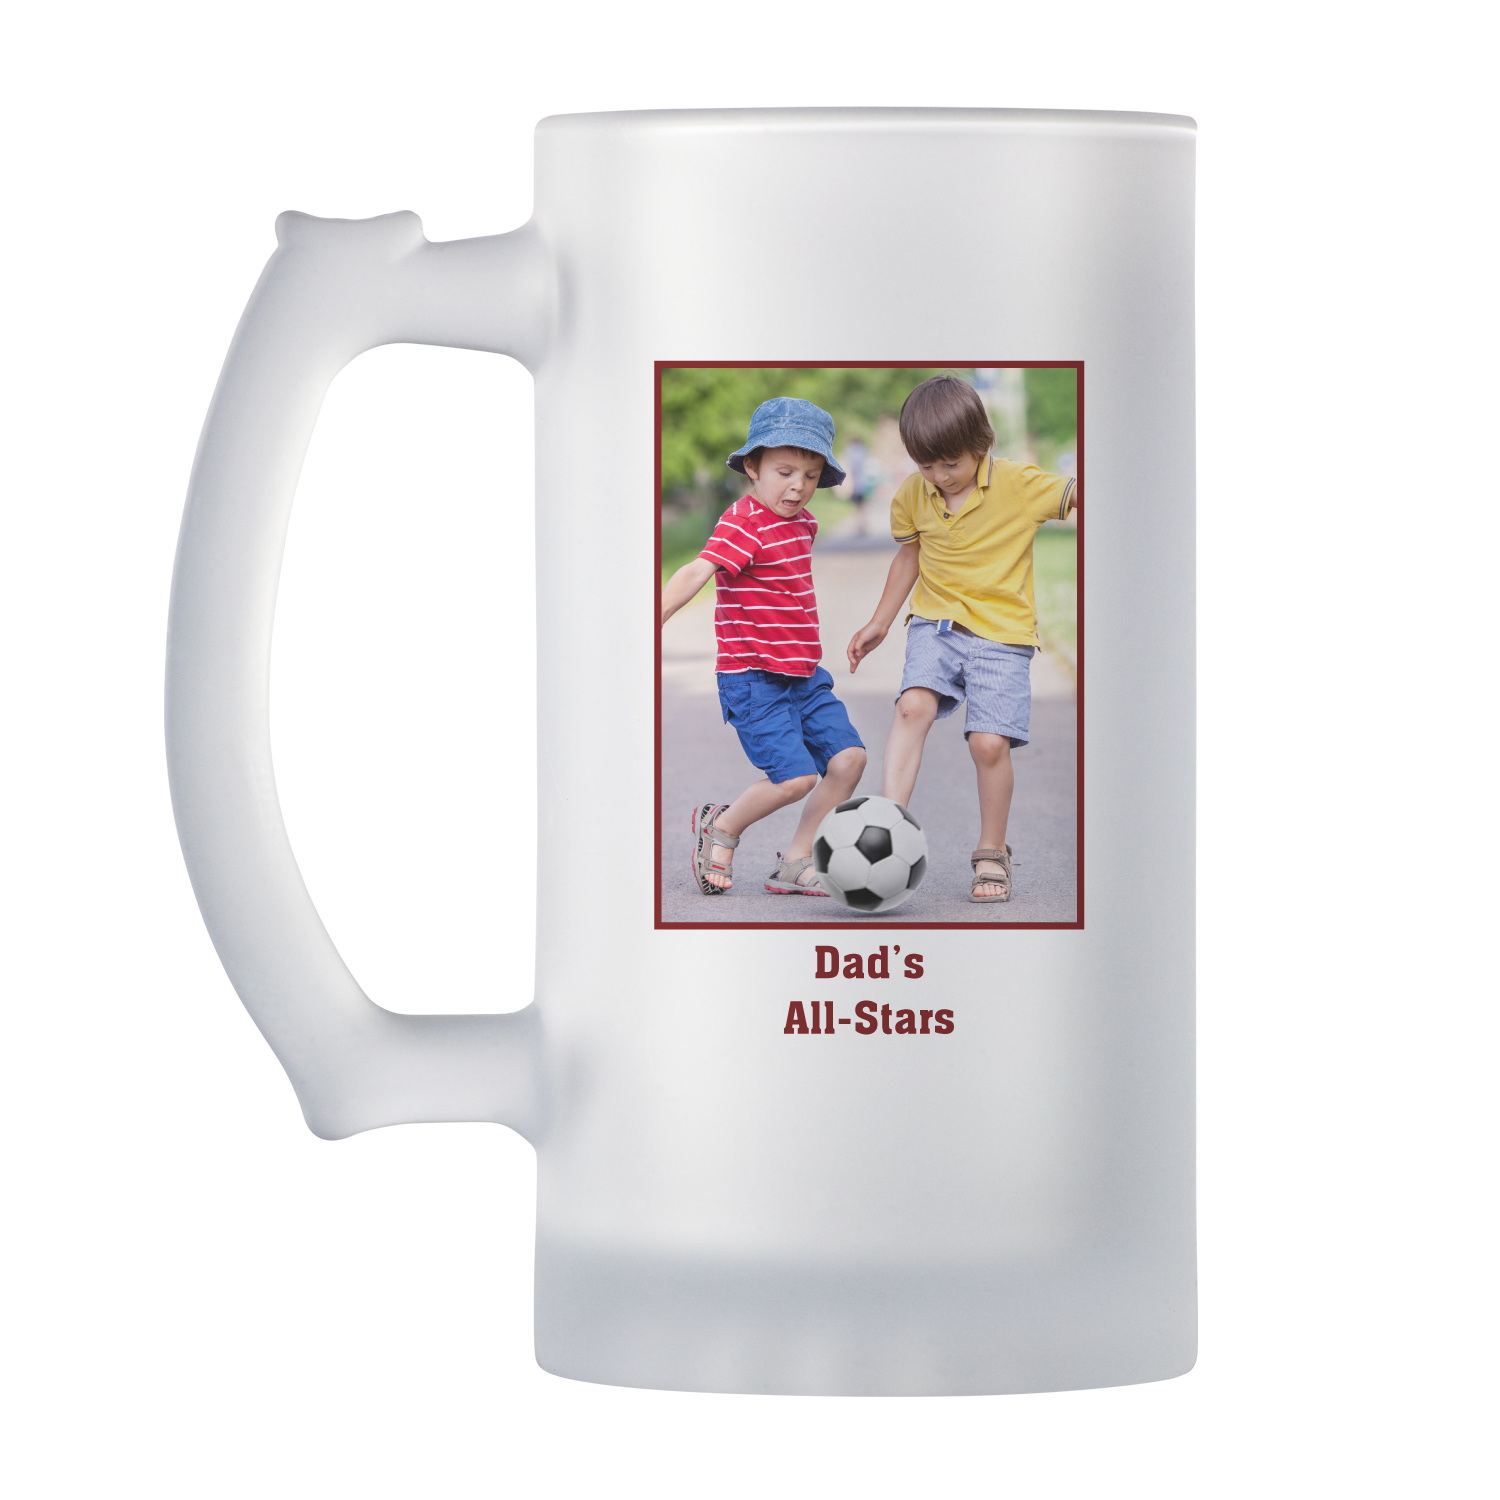 Personalized Photo Message Frosted Beer Mug - Available in 4 Colors